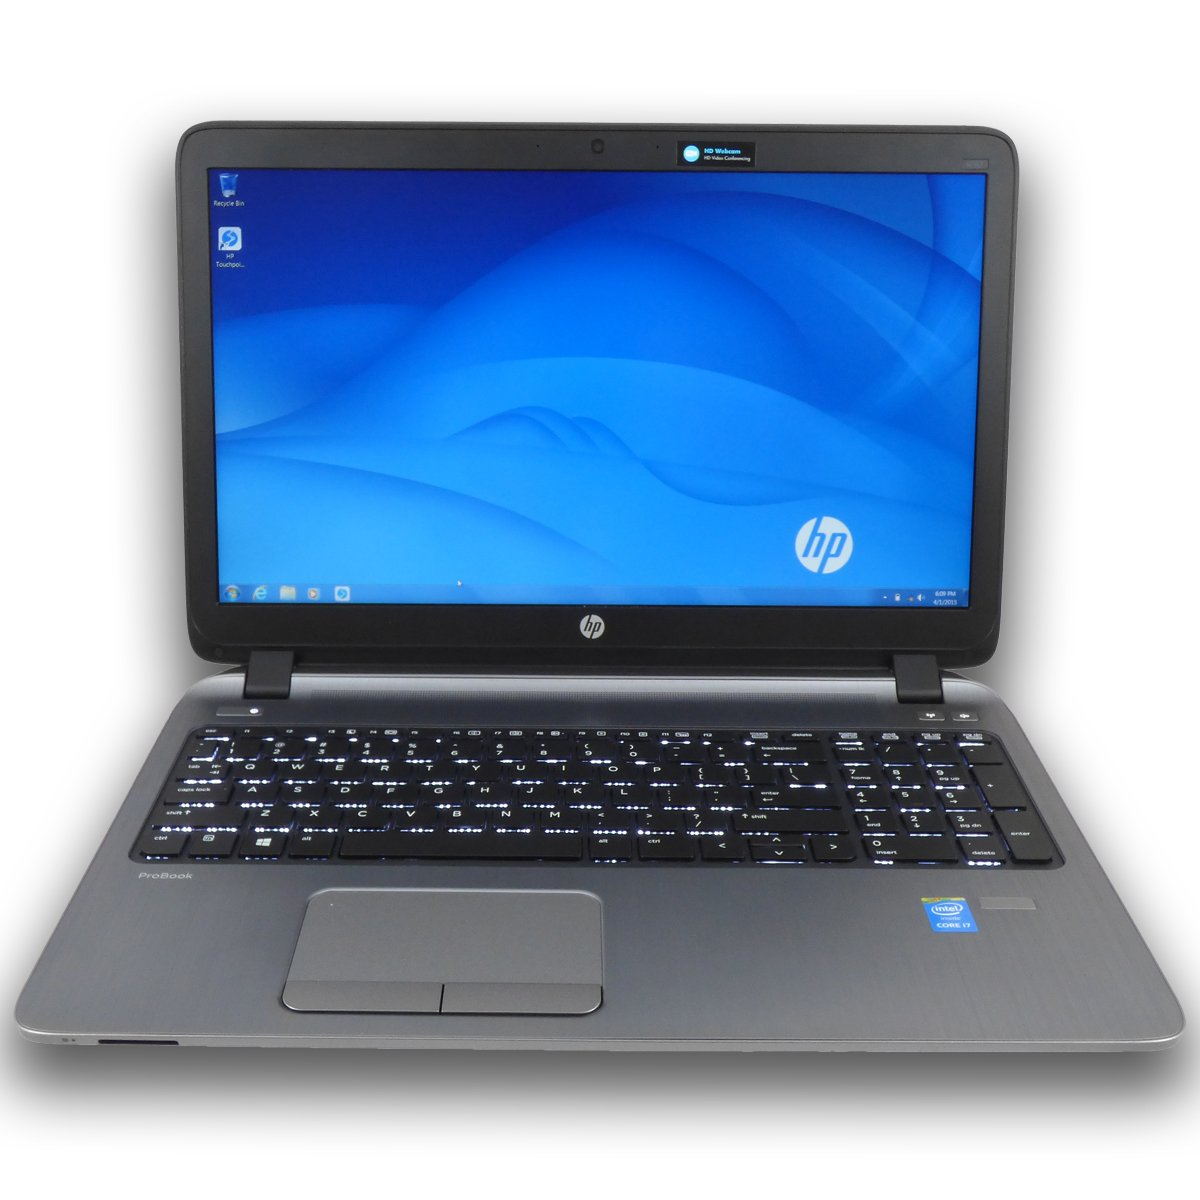 HP ProBook 450 G2 L8E01UT Business Laptop Bundle